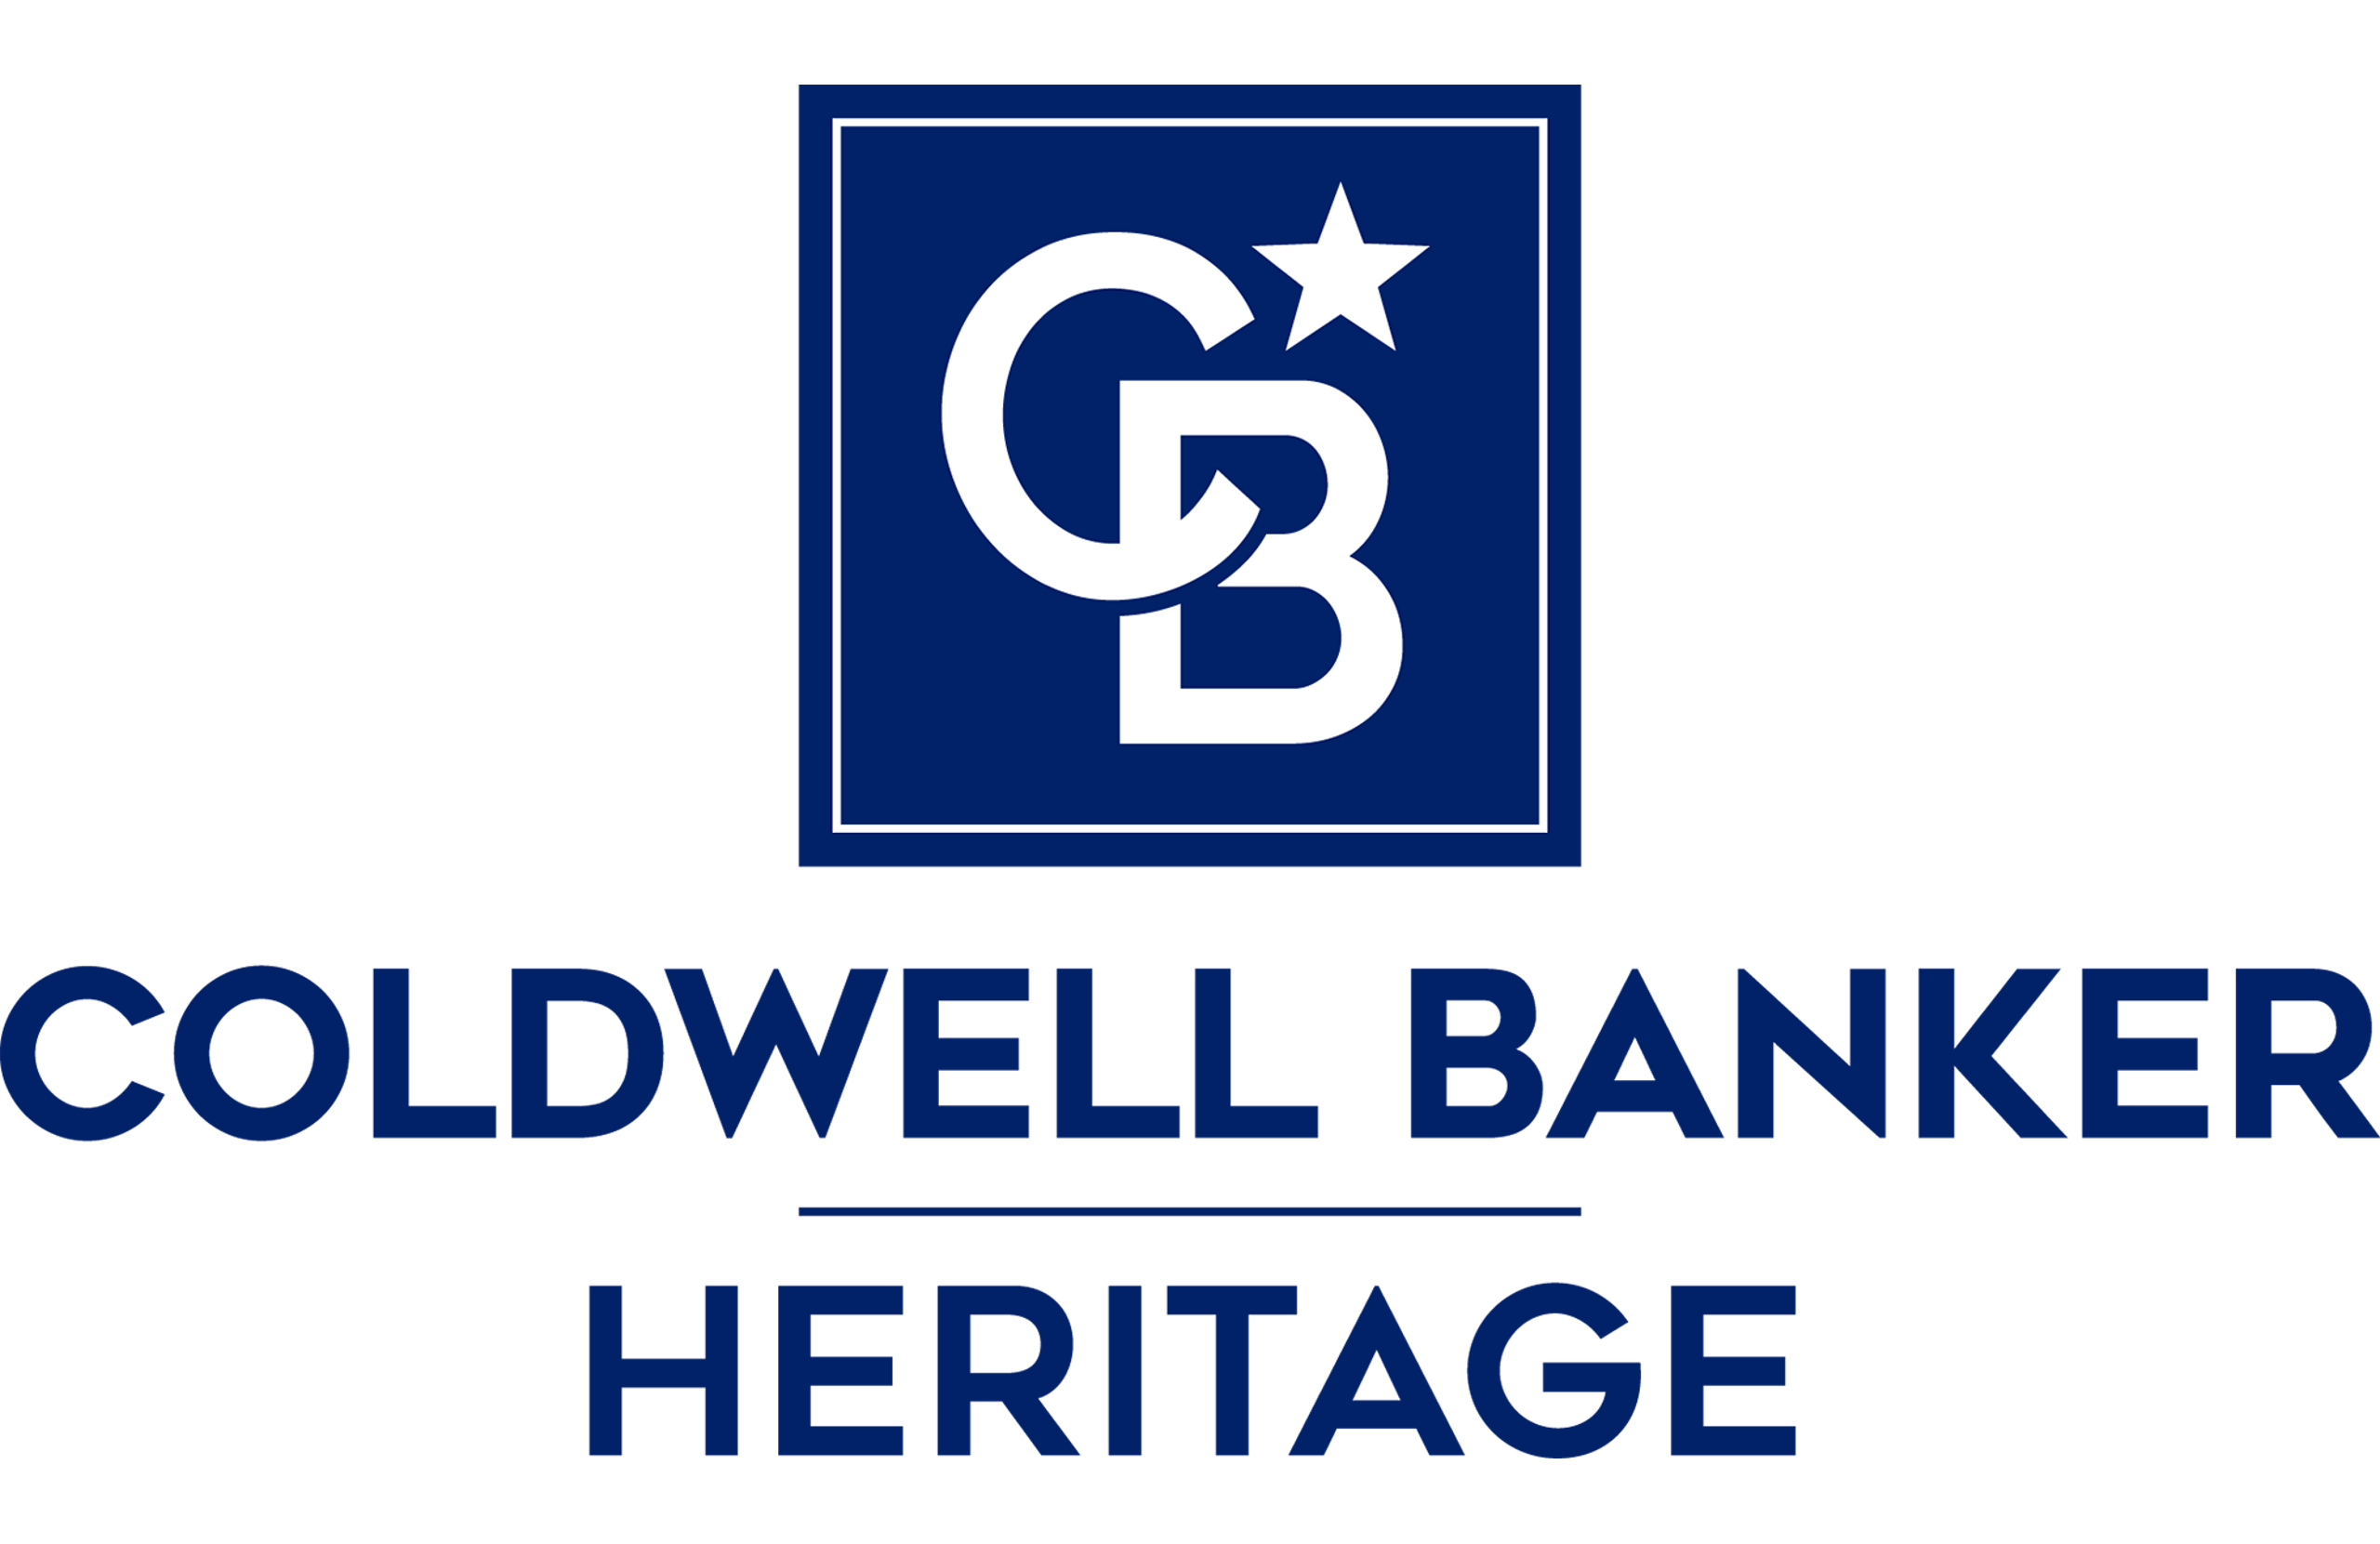 Ashley Belcher - Coldwell Banker Heritage